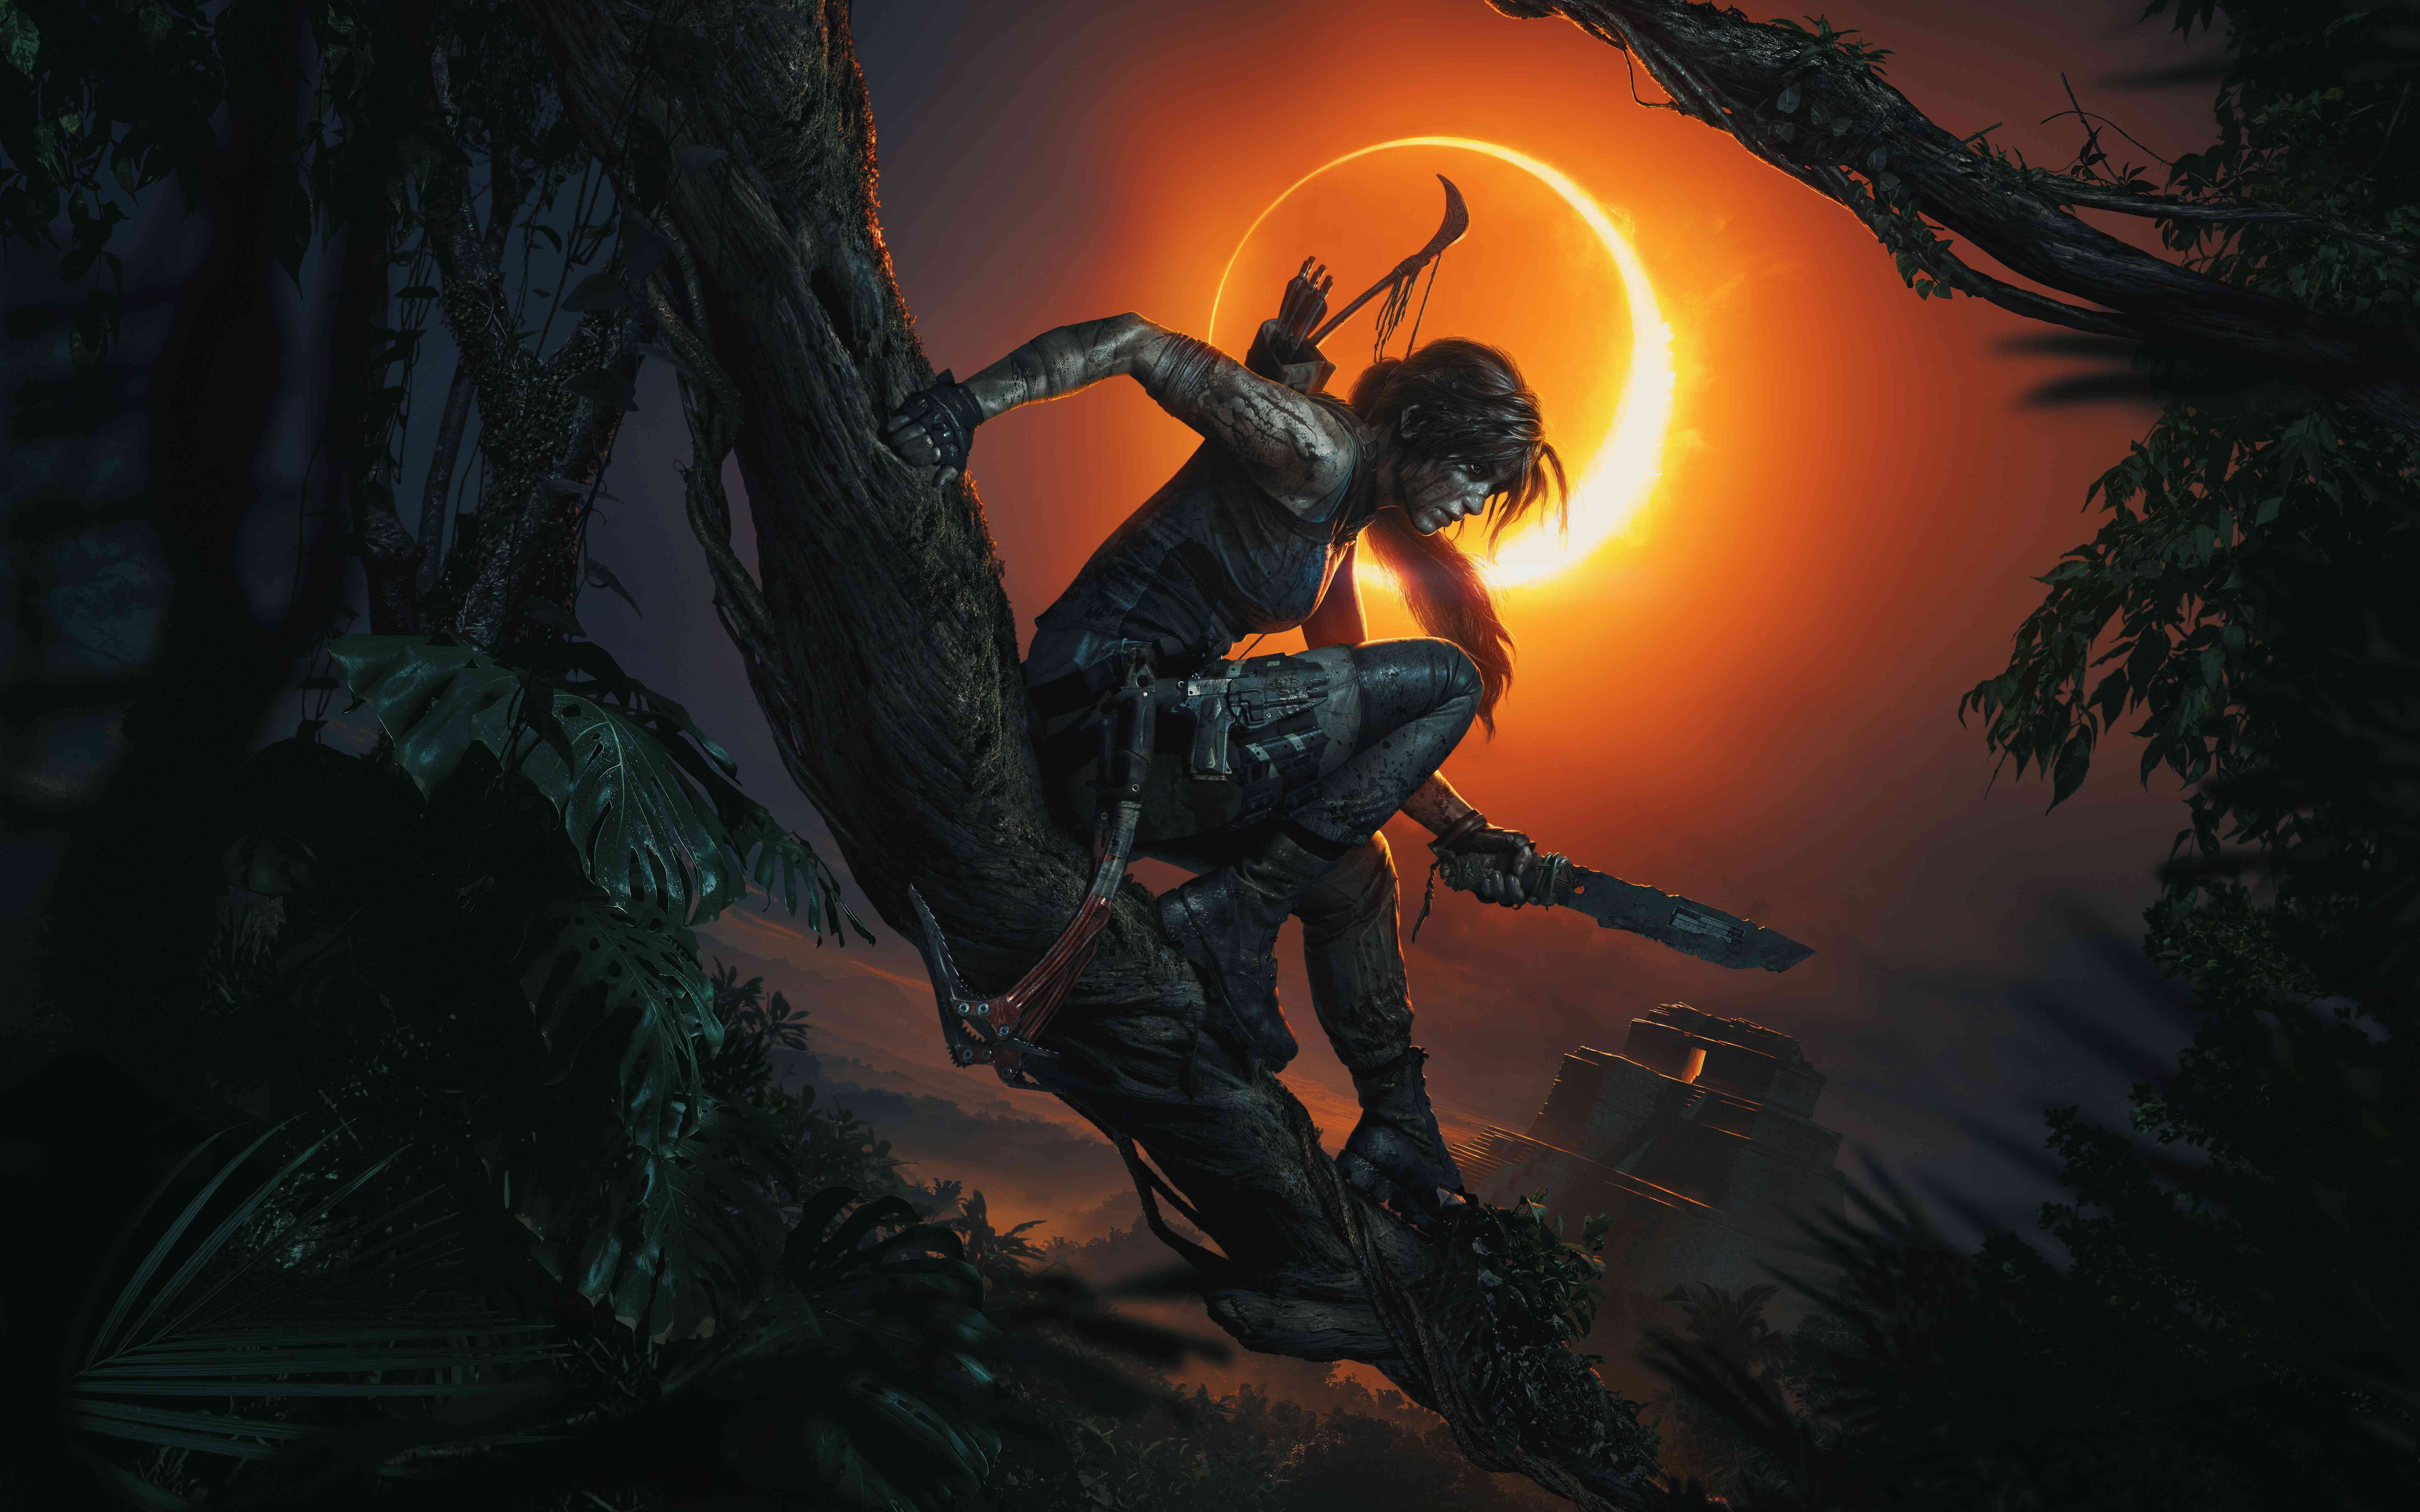 shadow-of-the-tomb-raider-officiel-inside-your-geek